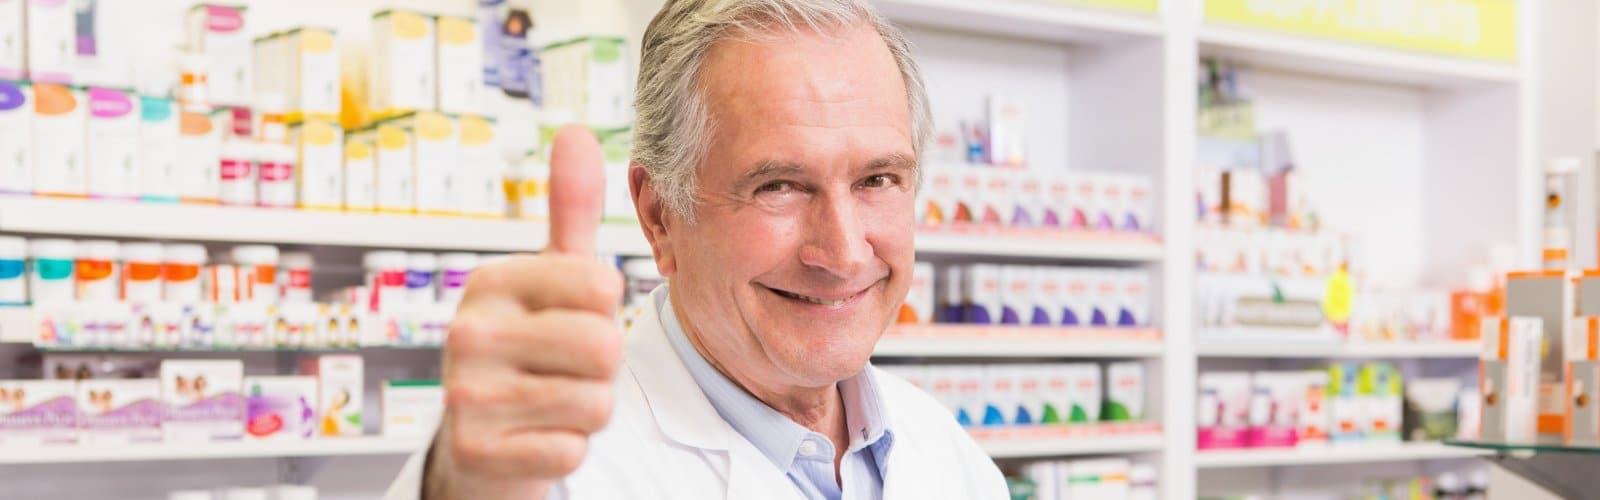 pharmacy ownership, pharmacy consulting, independent pharmacy consulting, independent pharmacy ownership, pharmacy brokerage services, buy a pharmacy, sell my pharmacy, sell a pharmacy, transfer a pharmacy, pharmacy valuation, pharmacy feasibility